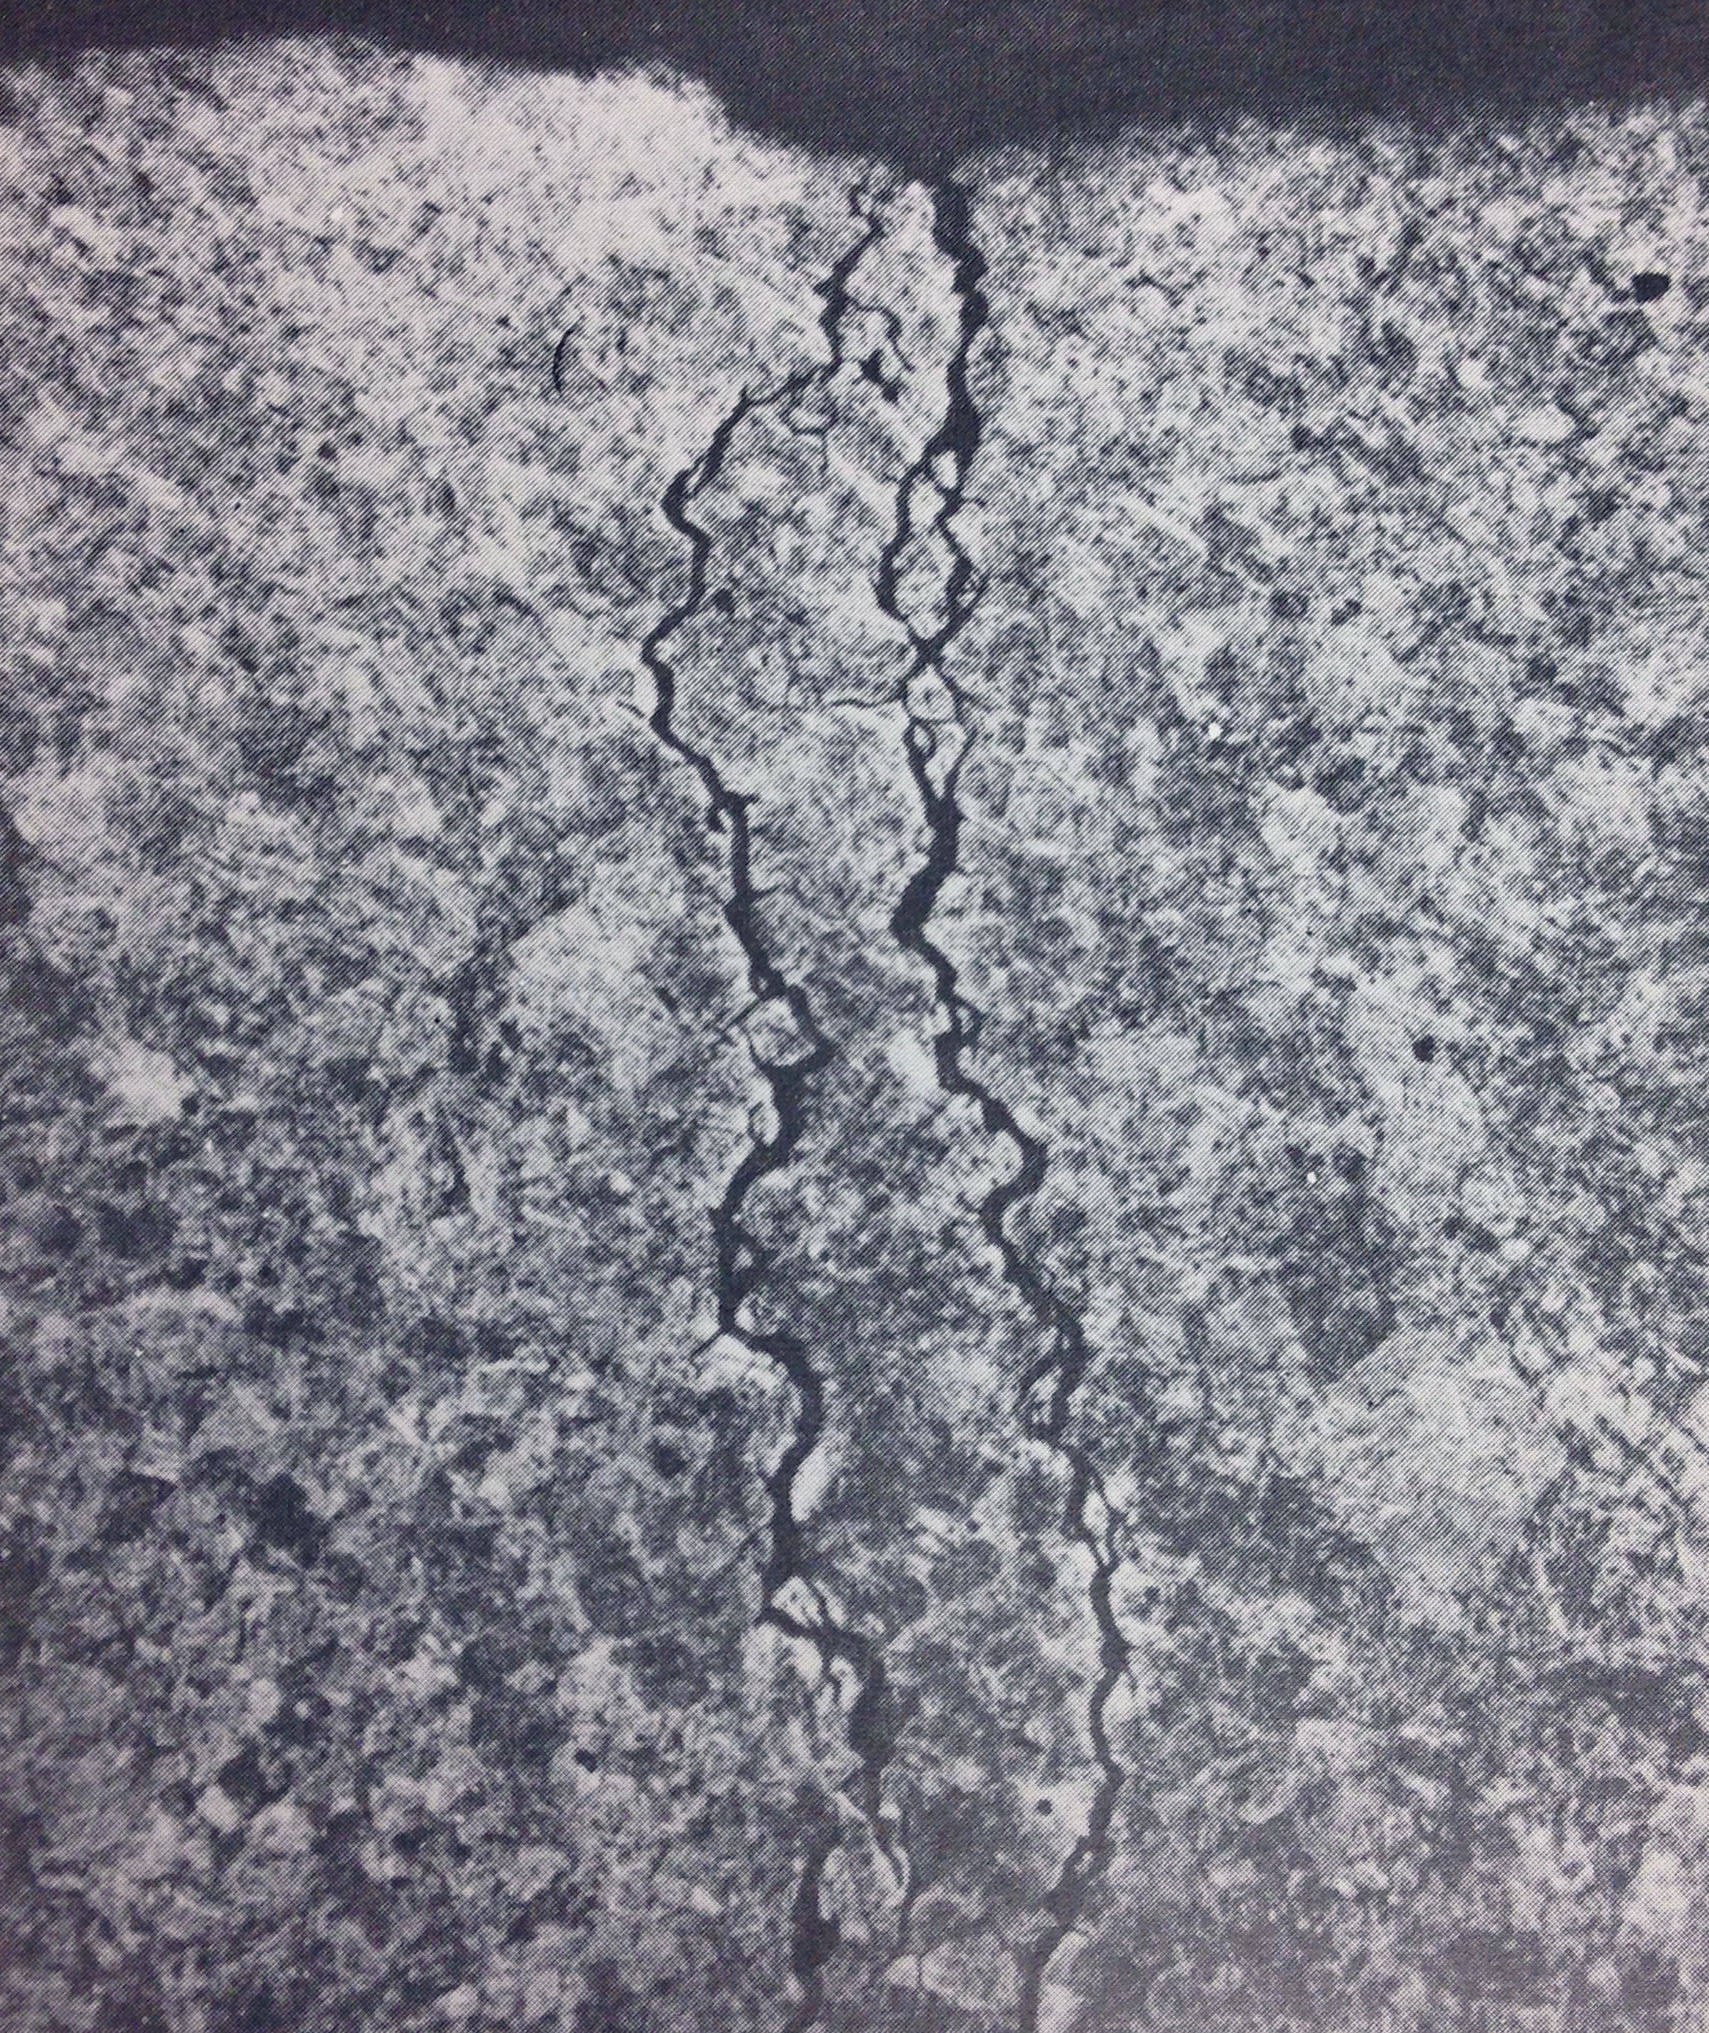 CR4 - Blog Entry: Quench Cracks- 3 Ways to Recognize